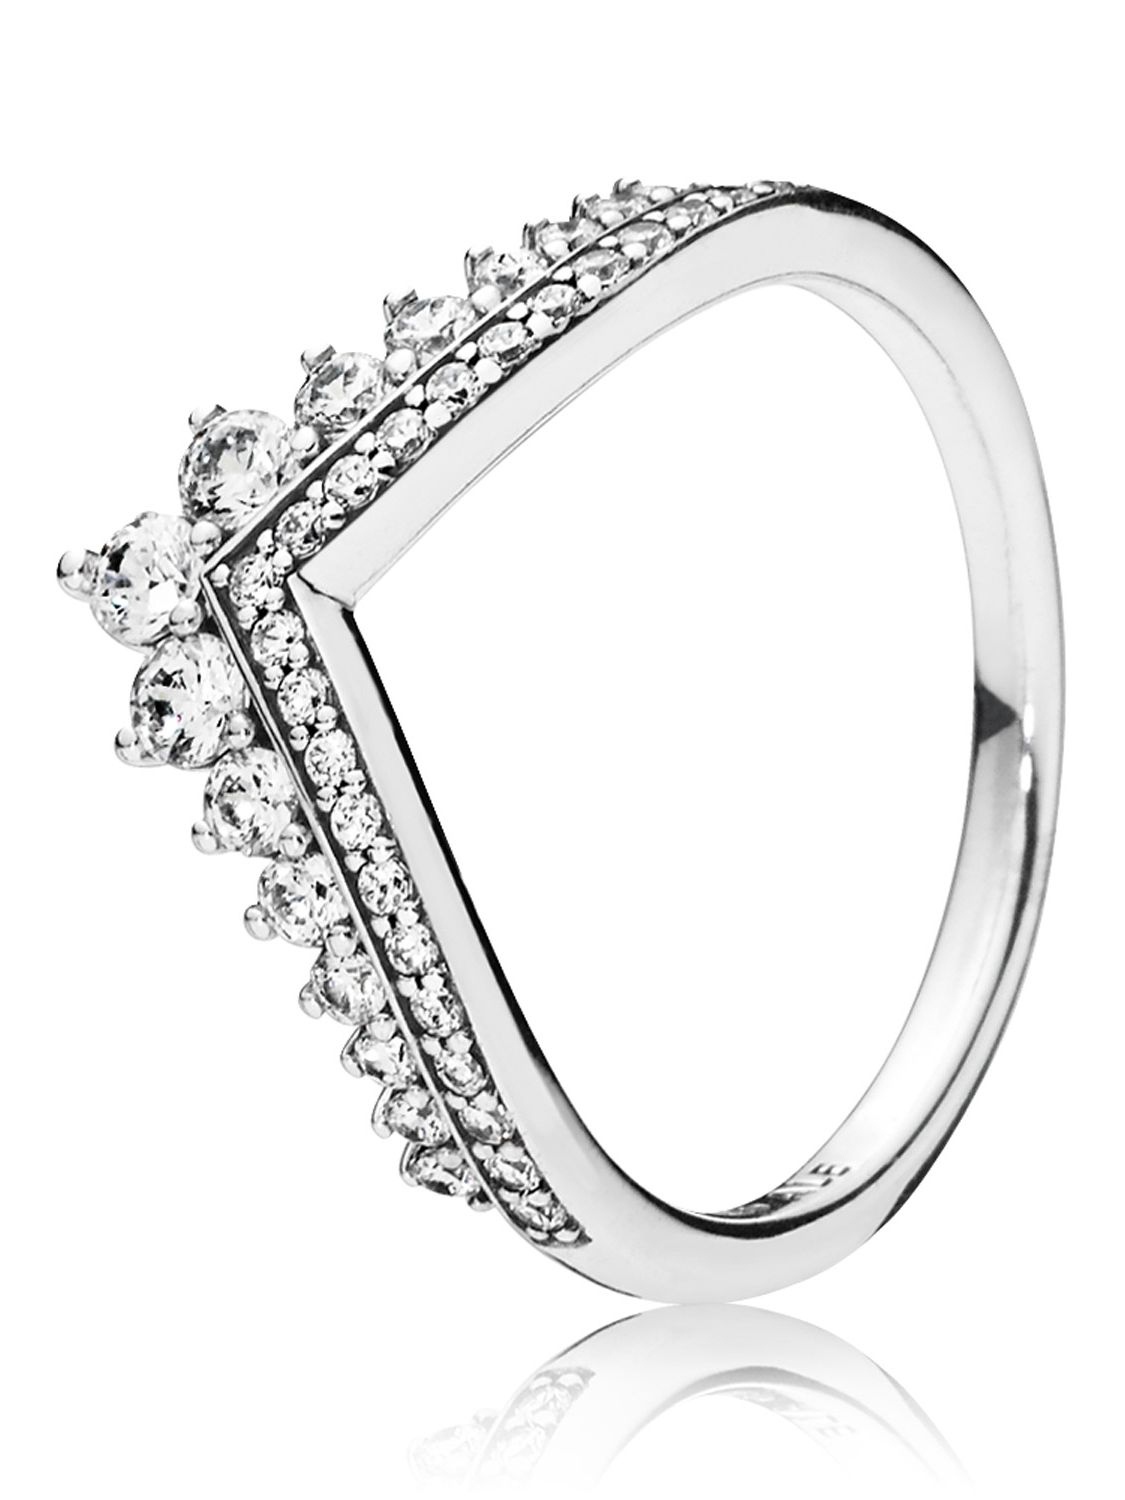 Pandora 197736Cz Ladies' Ring Princess Wish Pertaining To Current Sparkling & Polished Lines Rings (View 17 of 25)